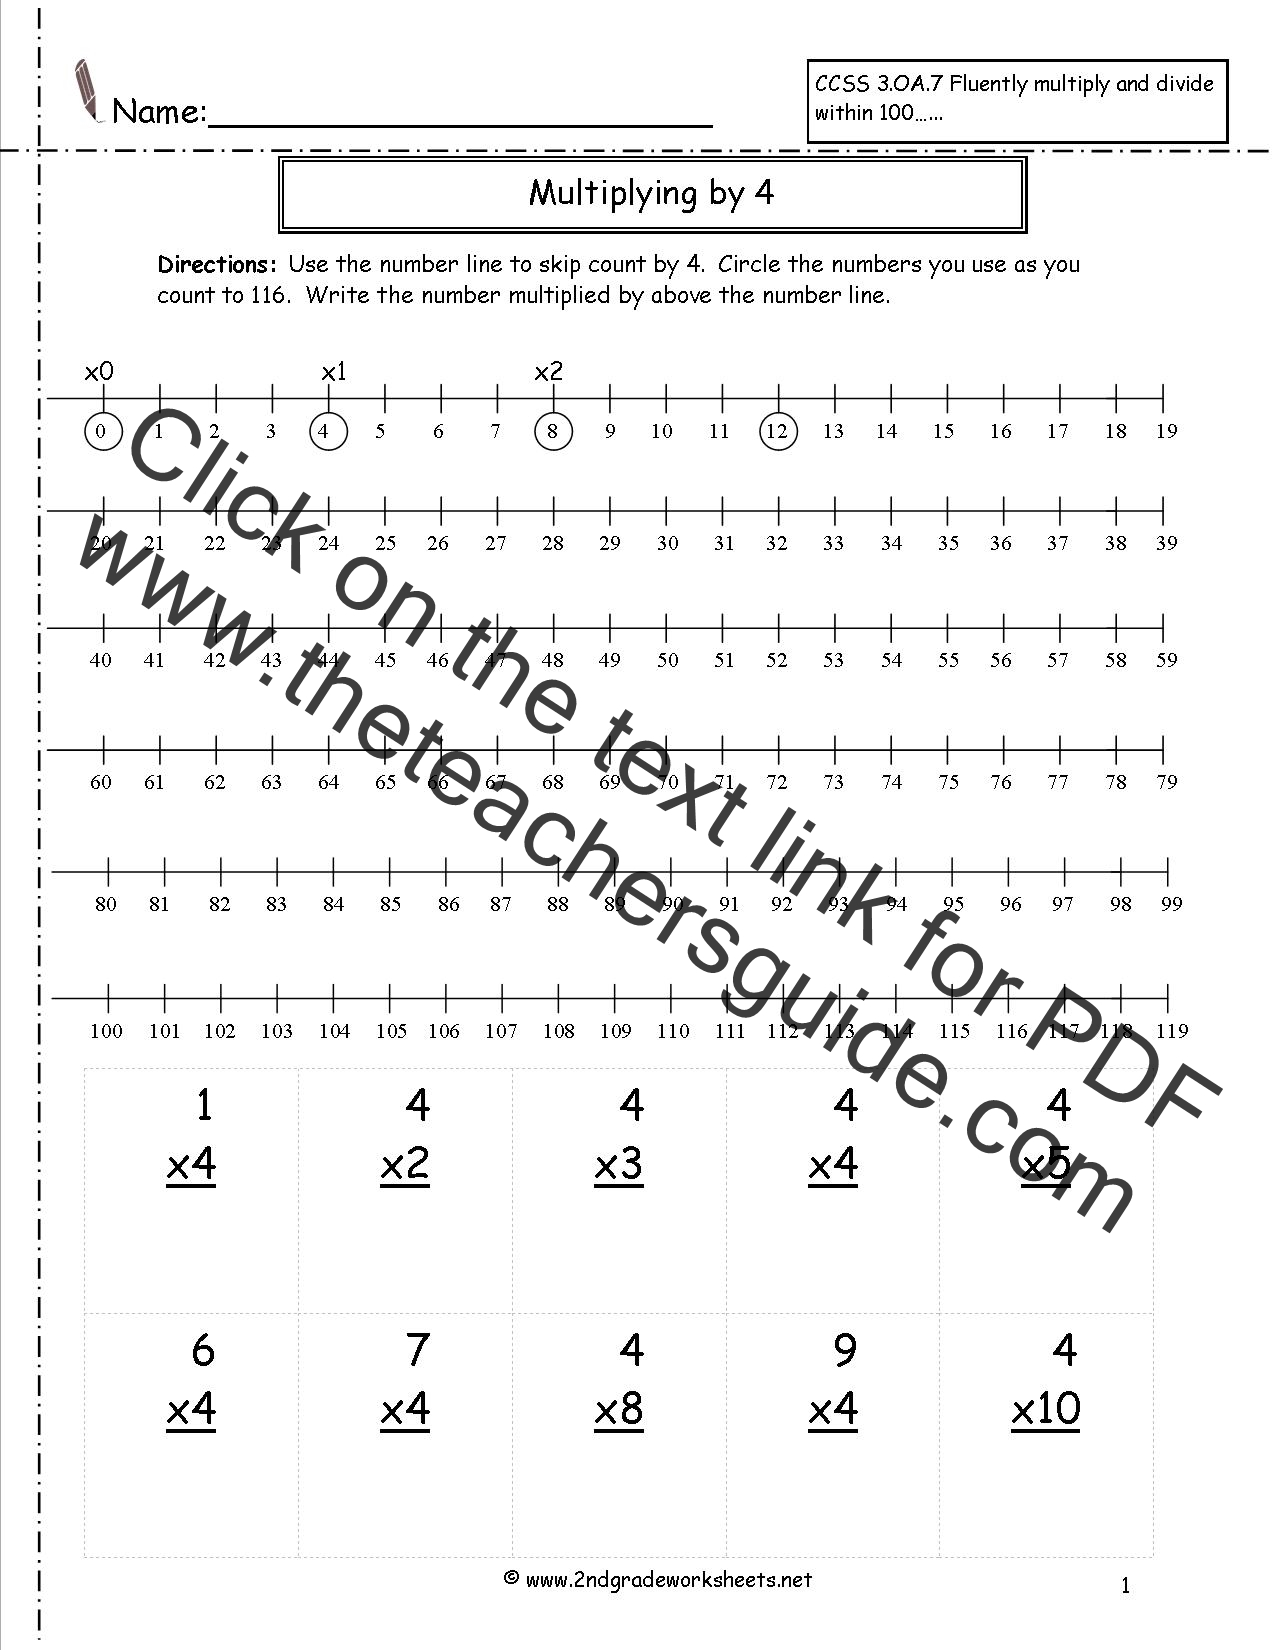 Worksheets Second Grade Multiplication Worksheets multiplication worksheets and printouts by four with numberline worksheet